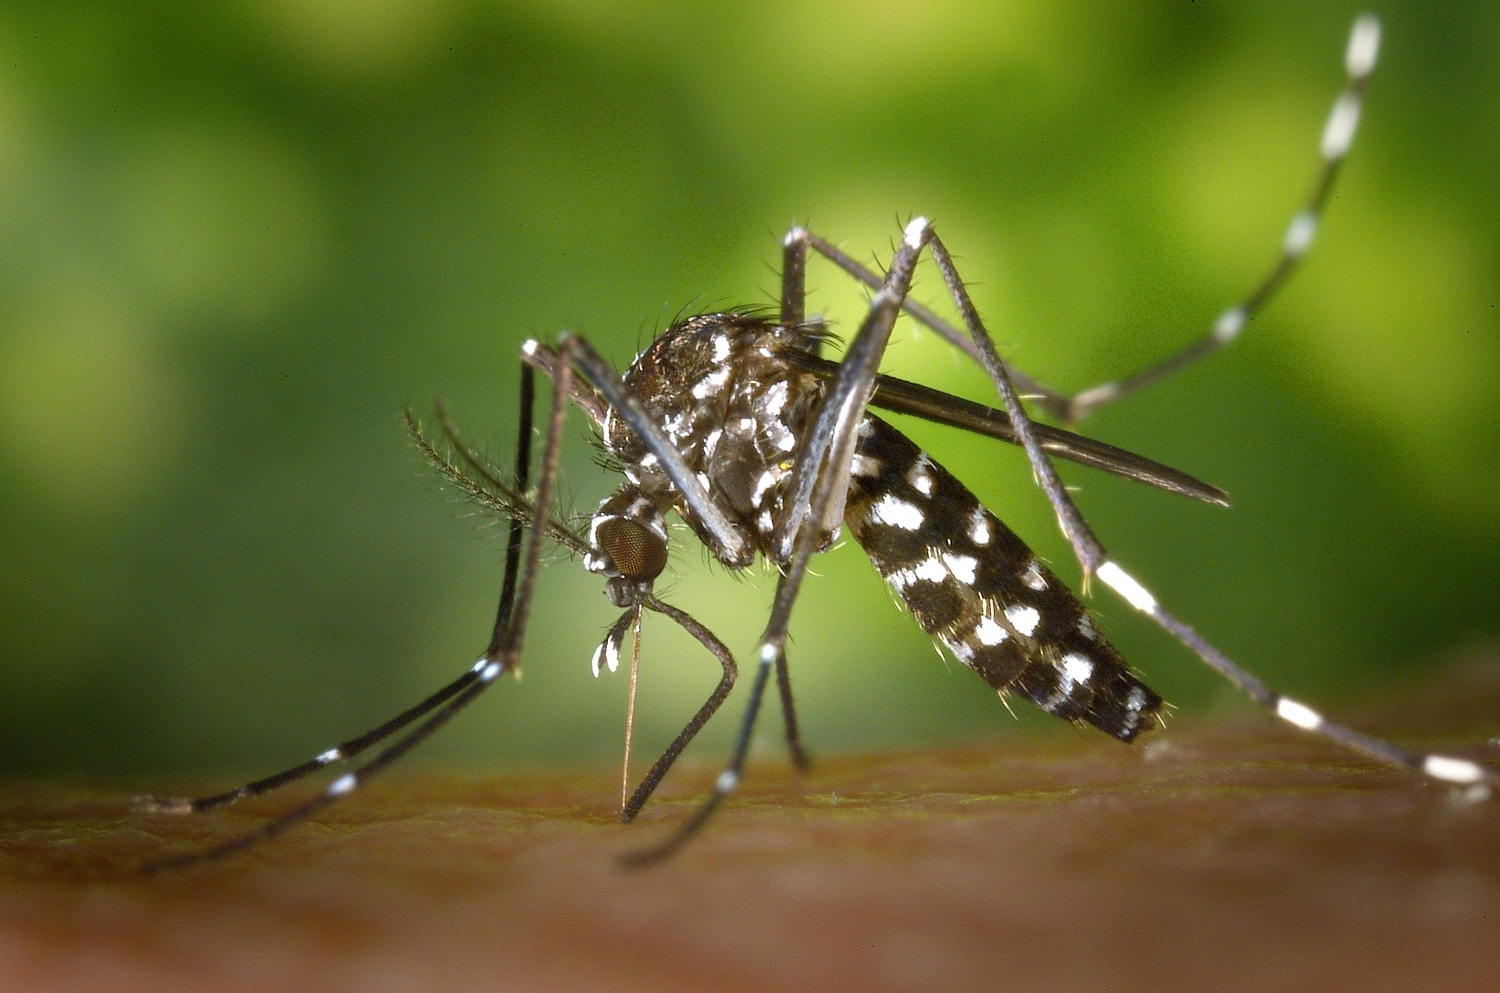 It's National Mosquito Control Awareness Week